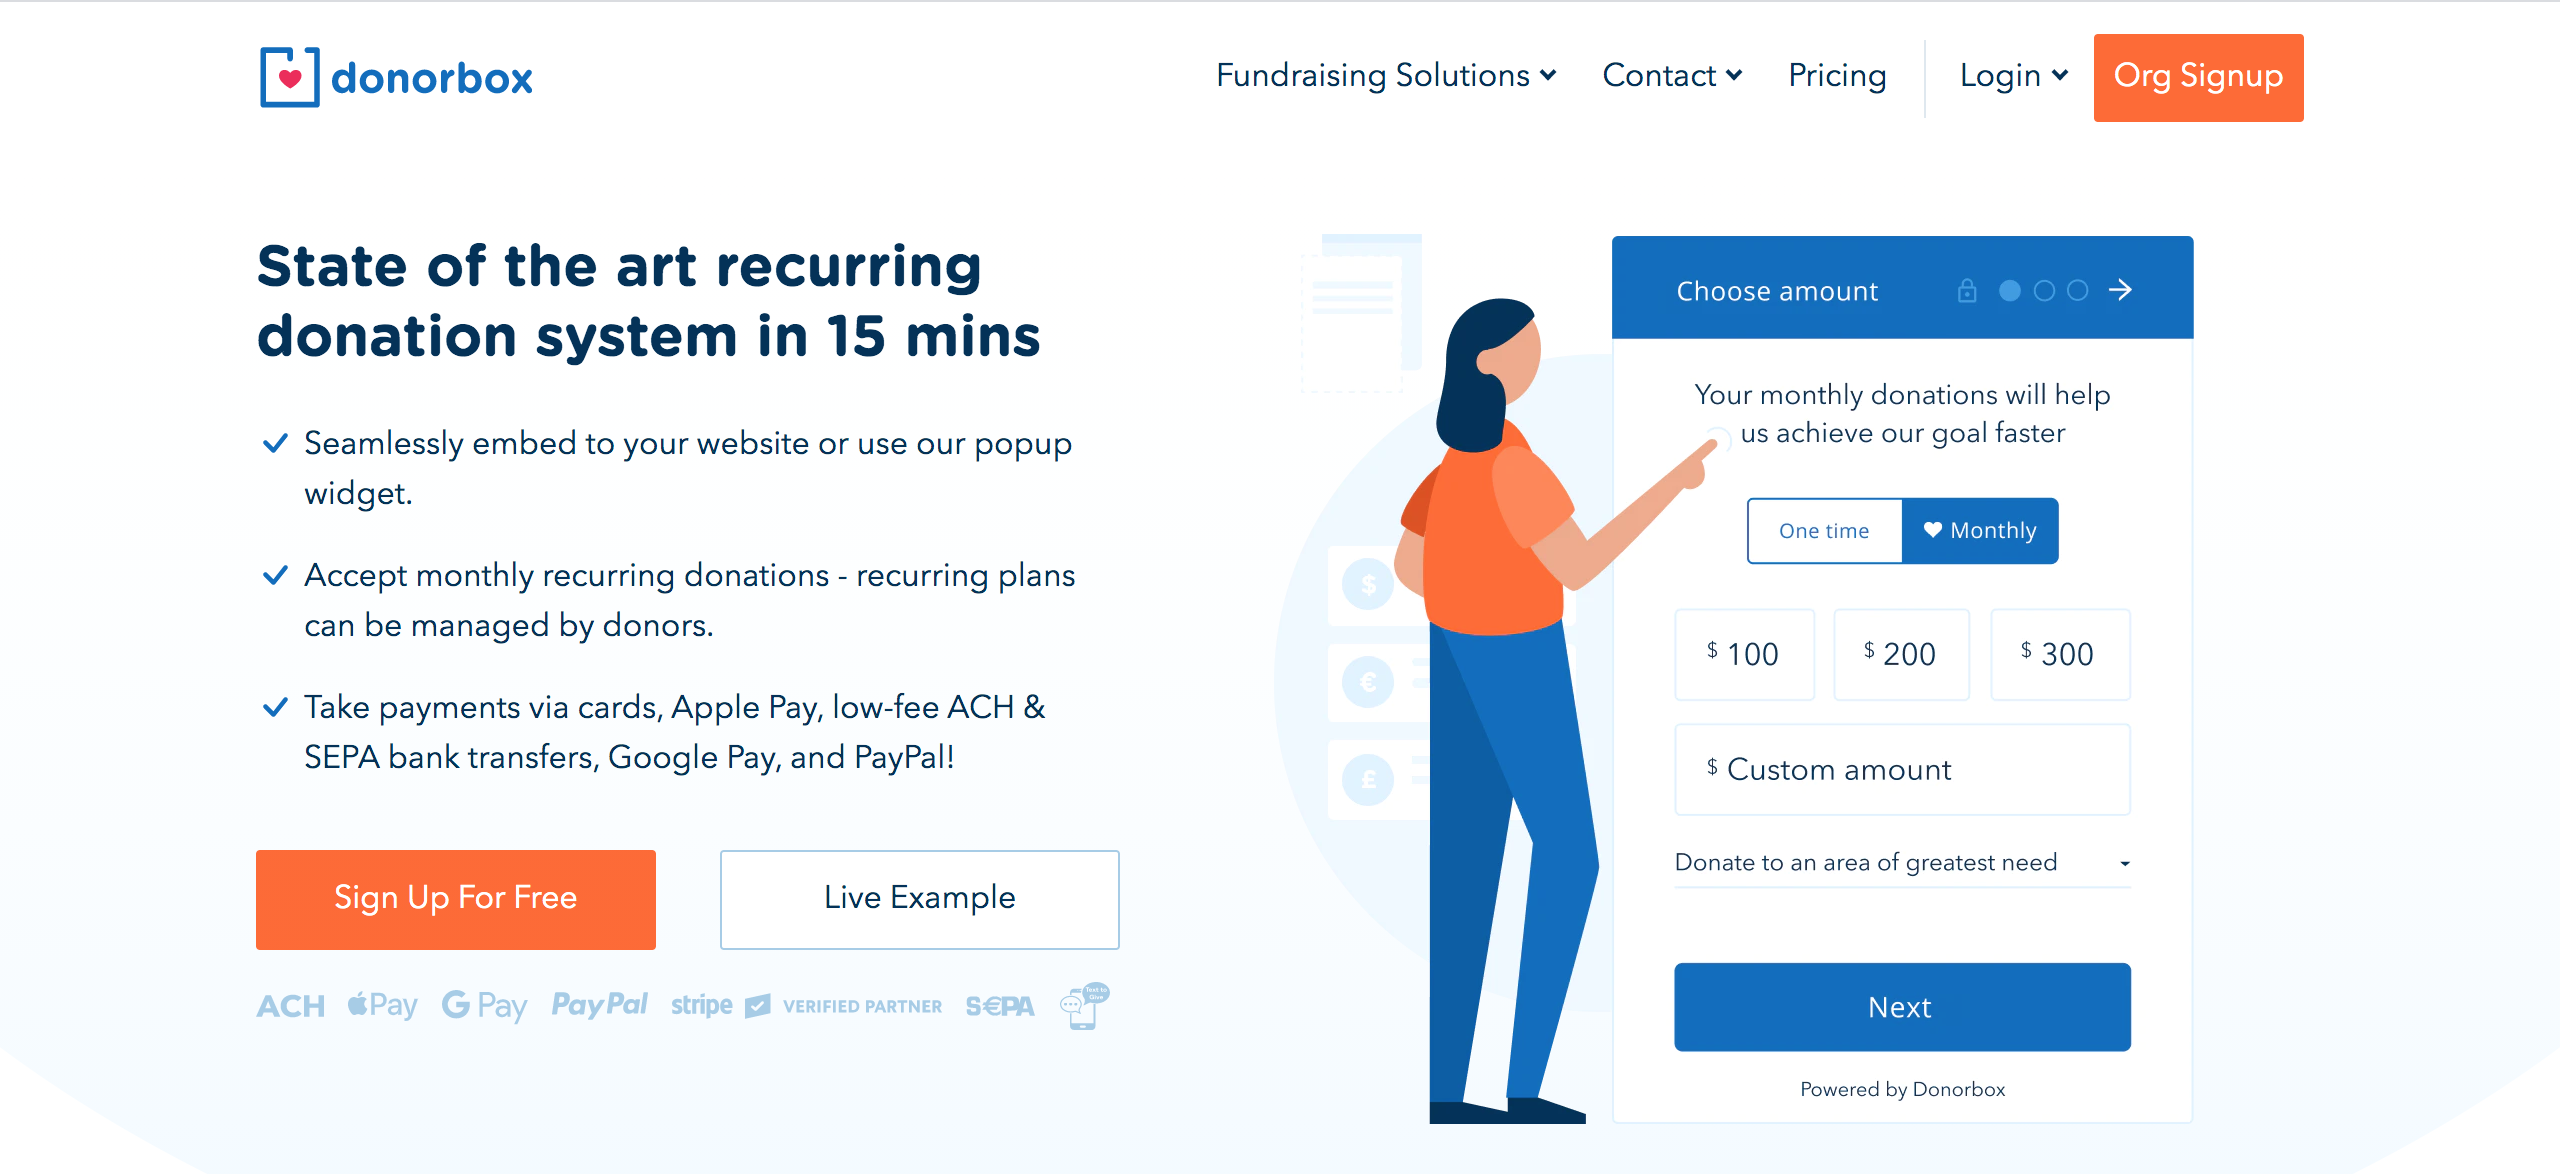 Donorbox Fundraising Software